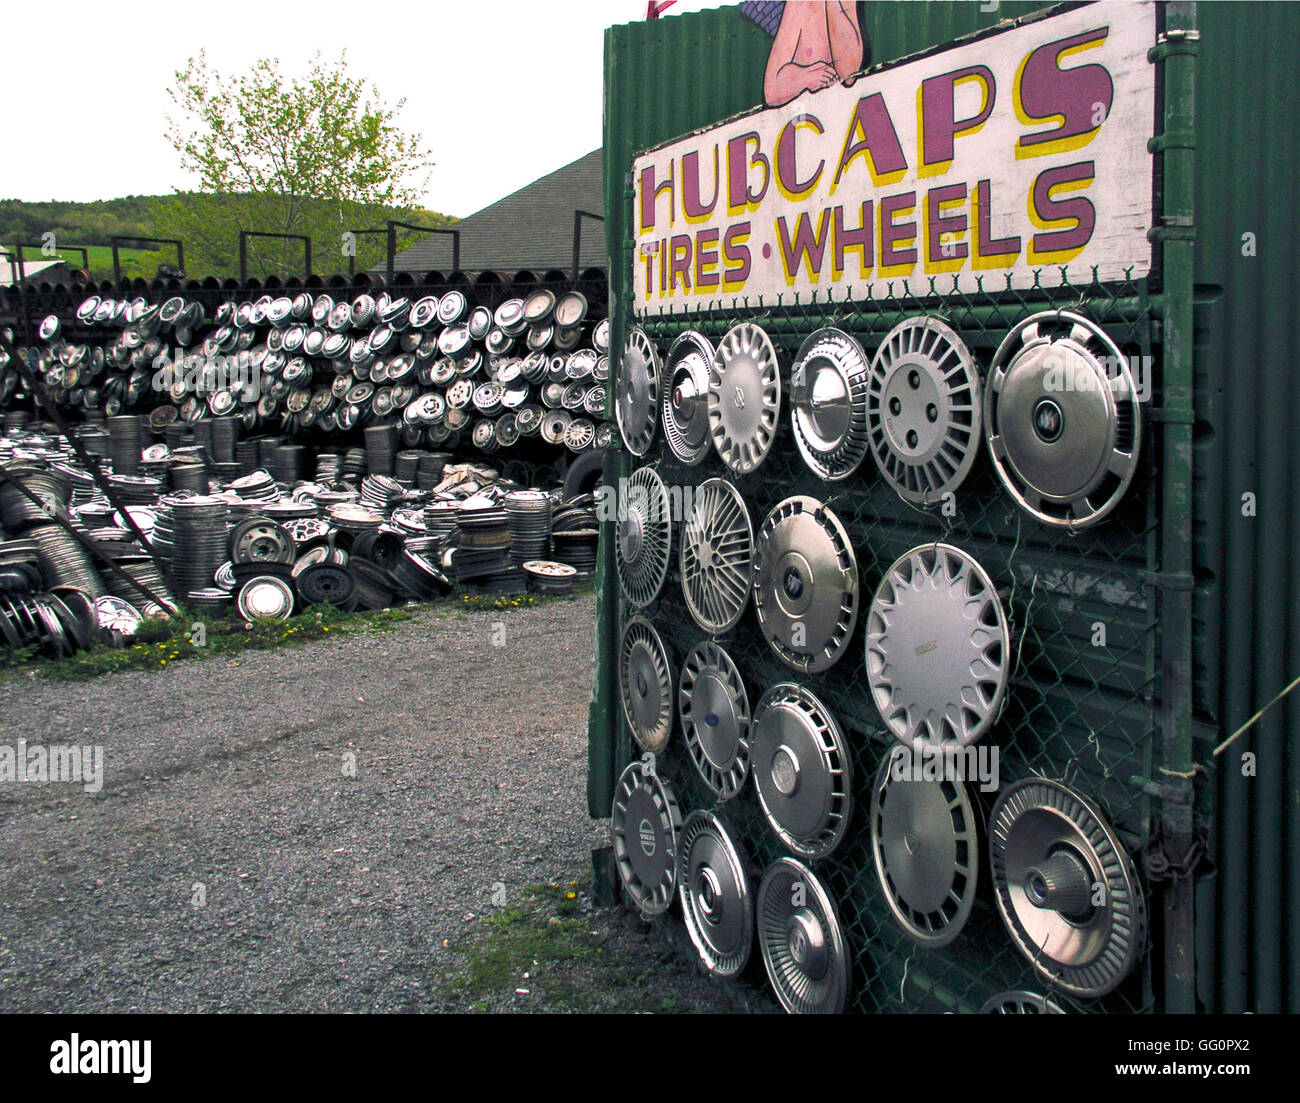 hubcaps-for-sale-ny-GG0PX2.jpg